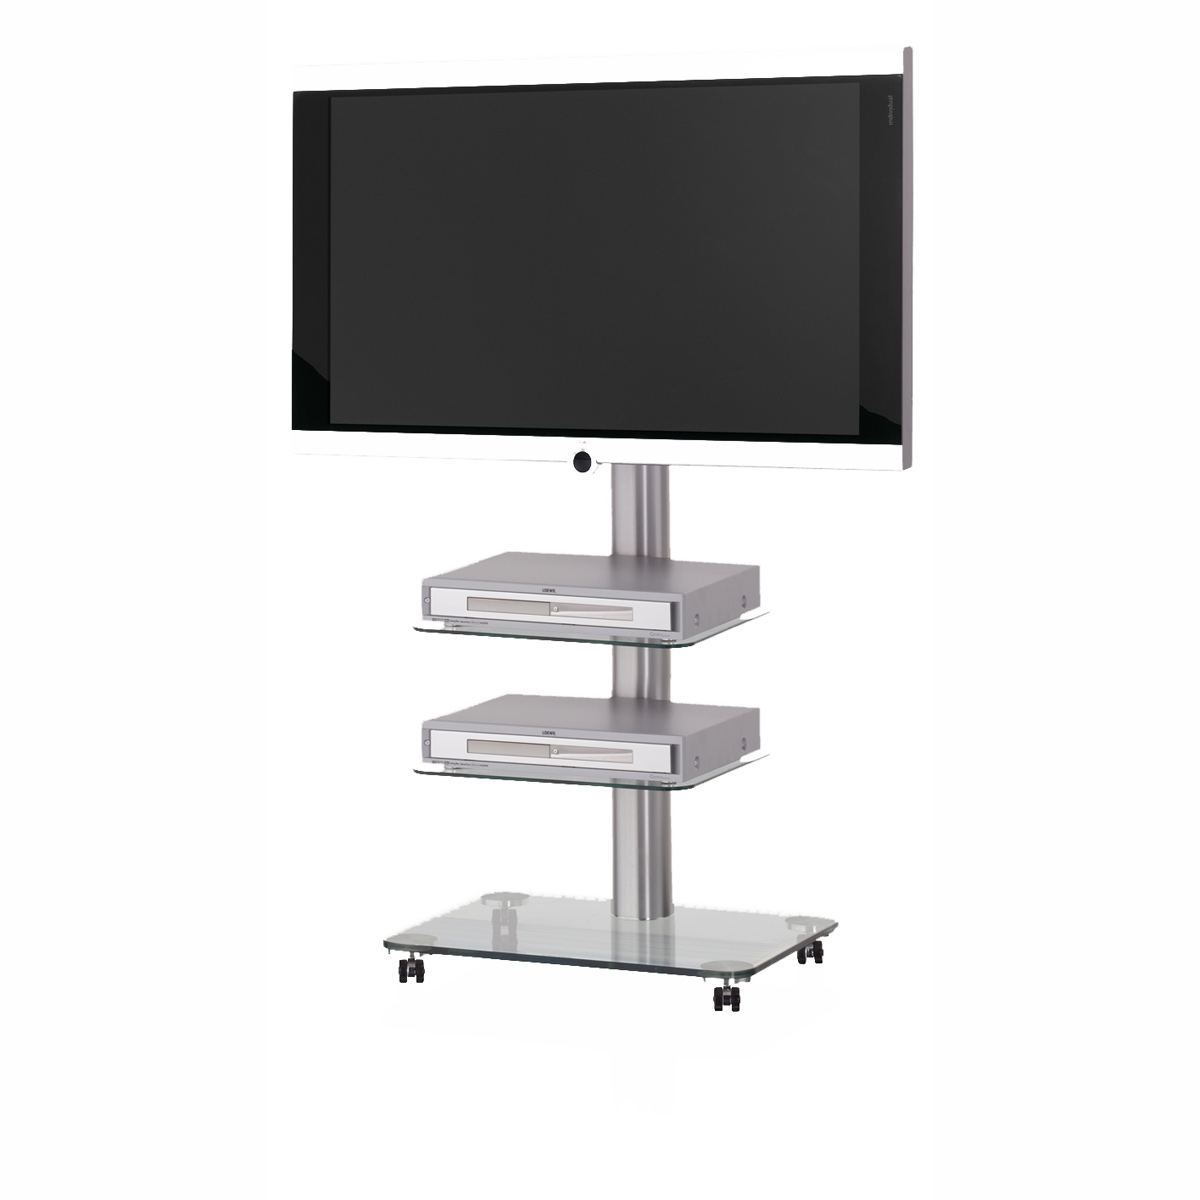 glas tv hot sale hot bending glass unique tv stand std. Black Bedroom Furniture Sets. Home Design Ideas